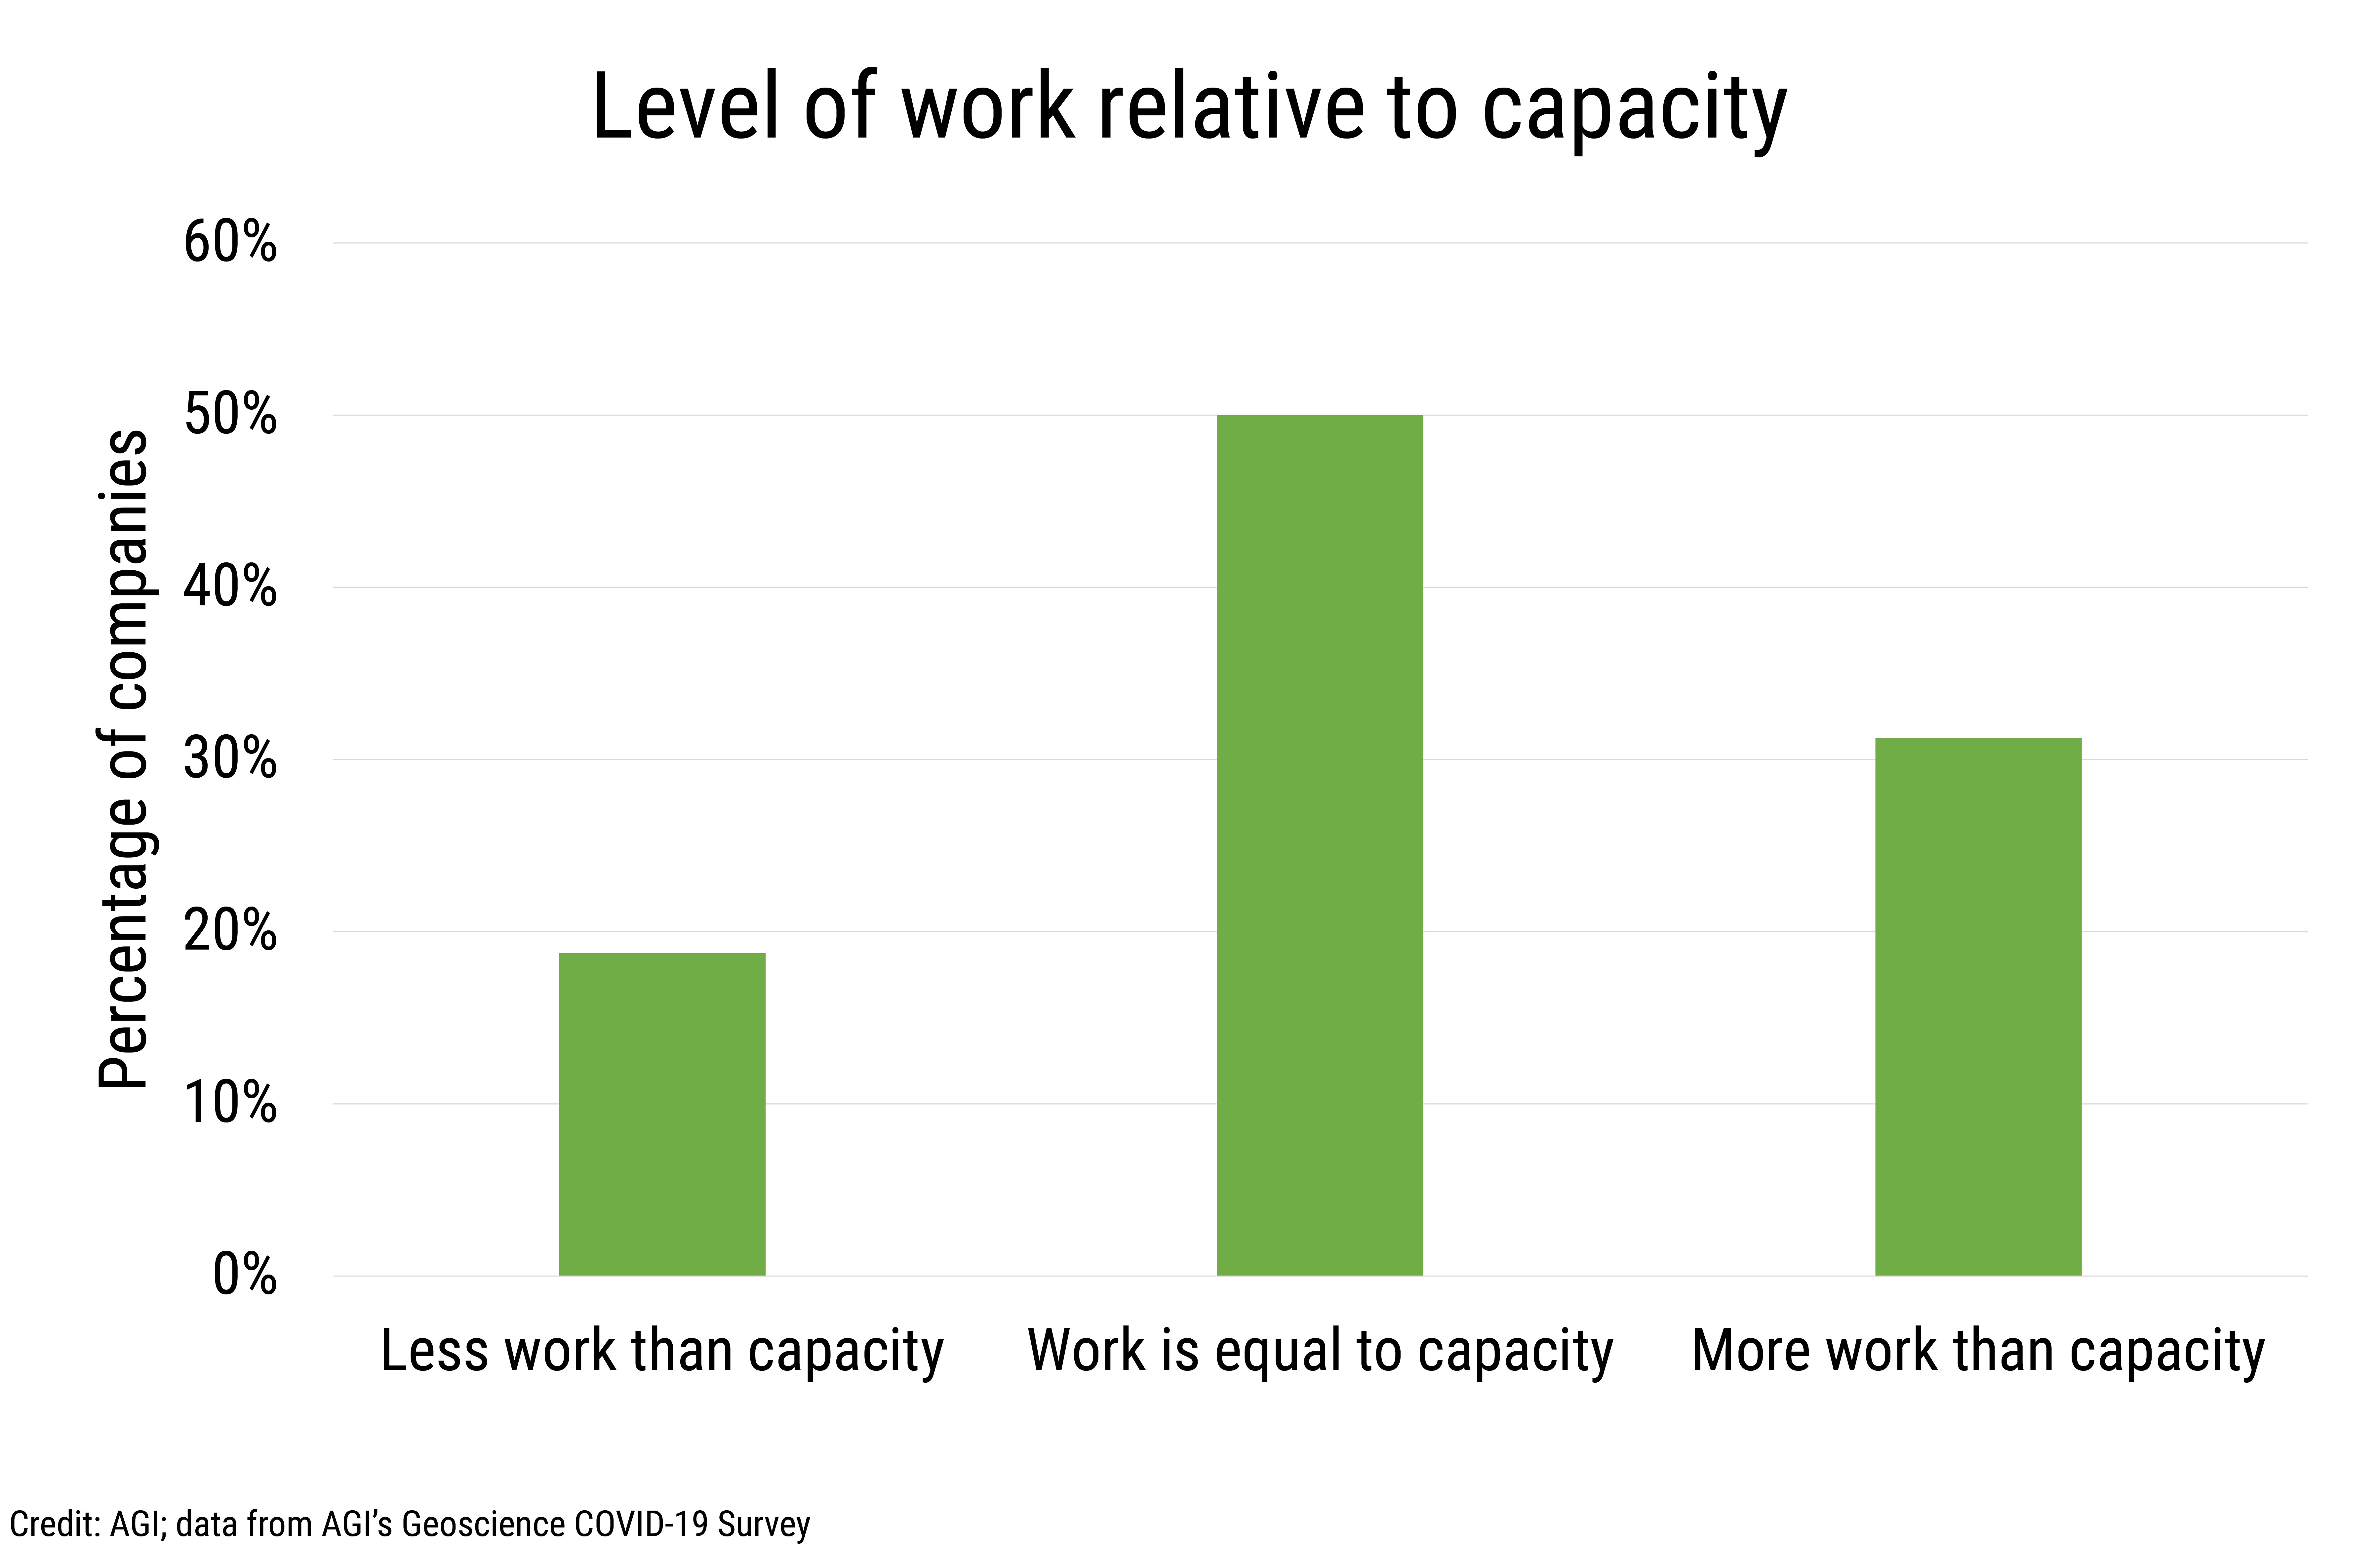 Data Brief 2020-011 chart-02: Level of work relative to capacity (credit: AGI; data from AGI's Geoscience COVID-19 Survey)